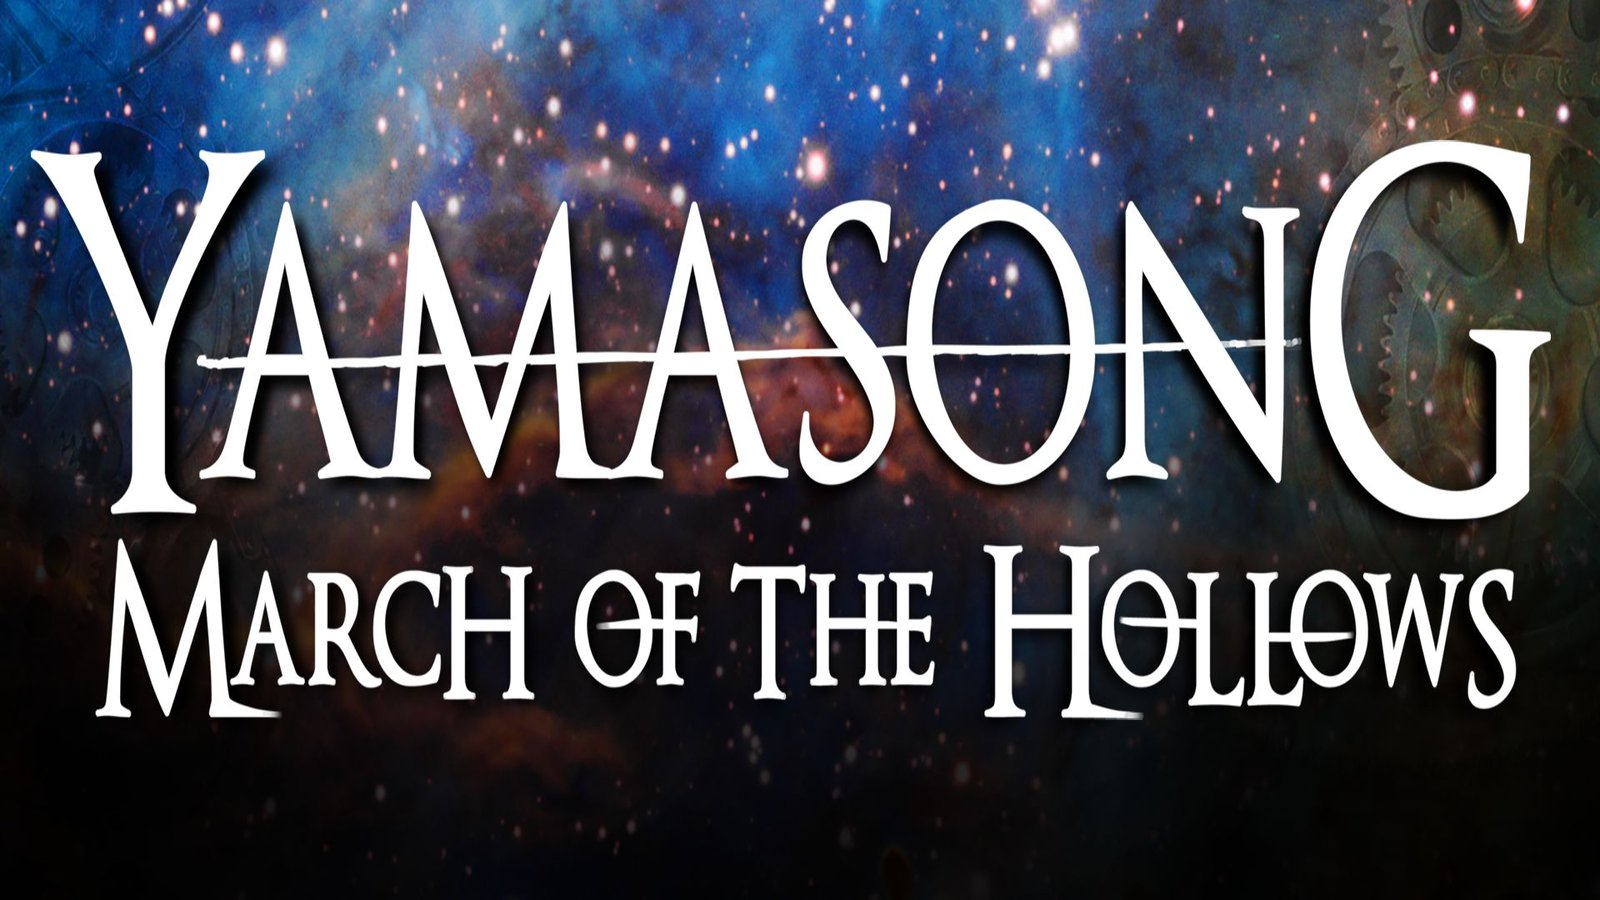 Yamasong - March of the Hollows